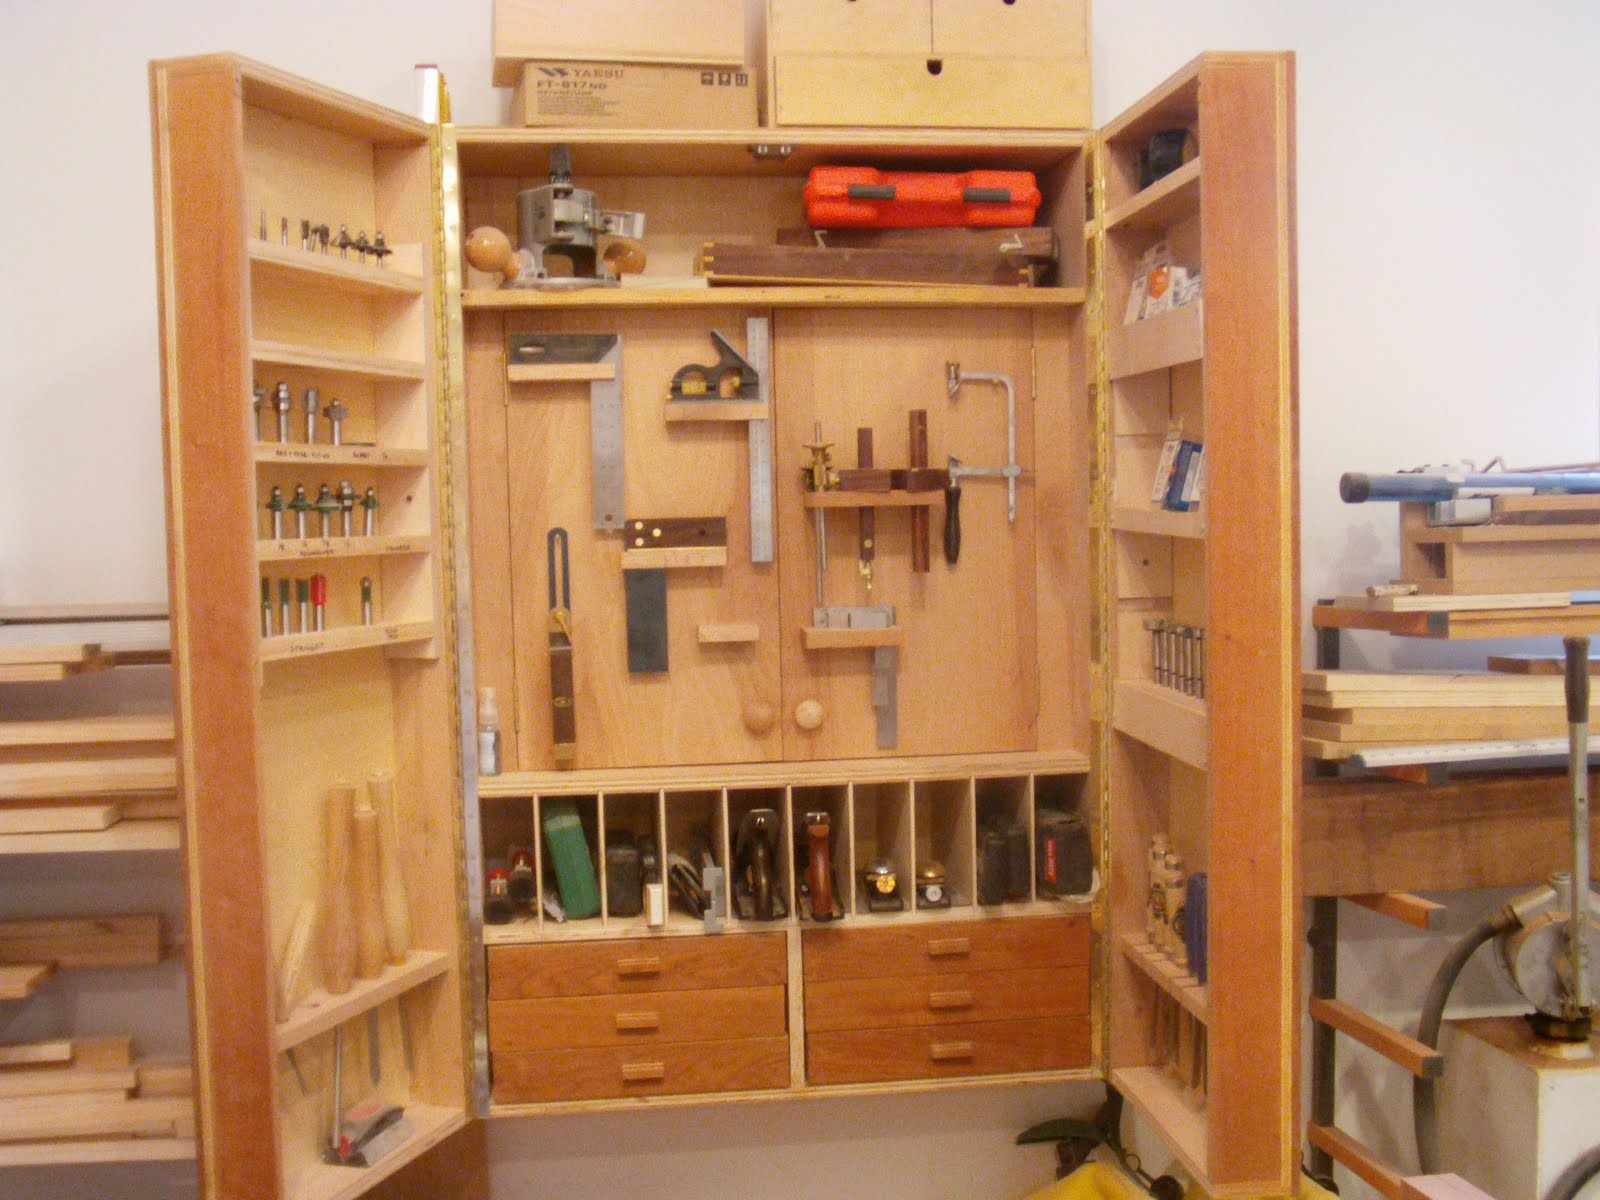 Tool Storage Cabinets Improvements To The Cabinet